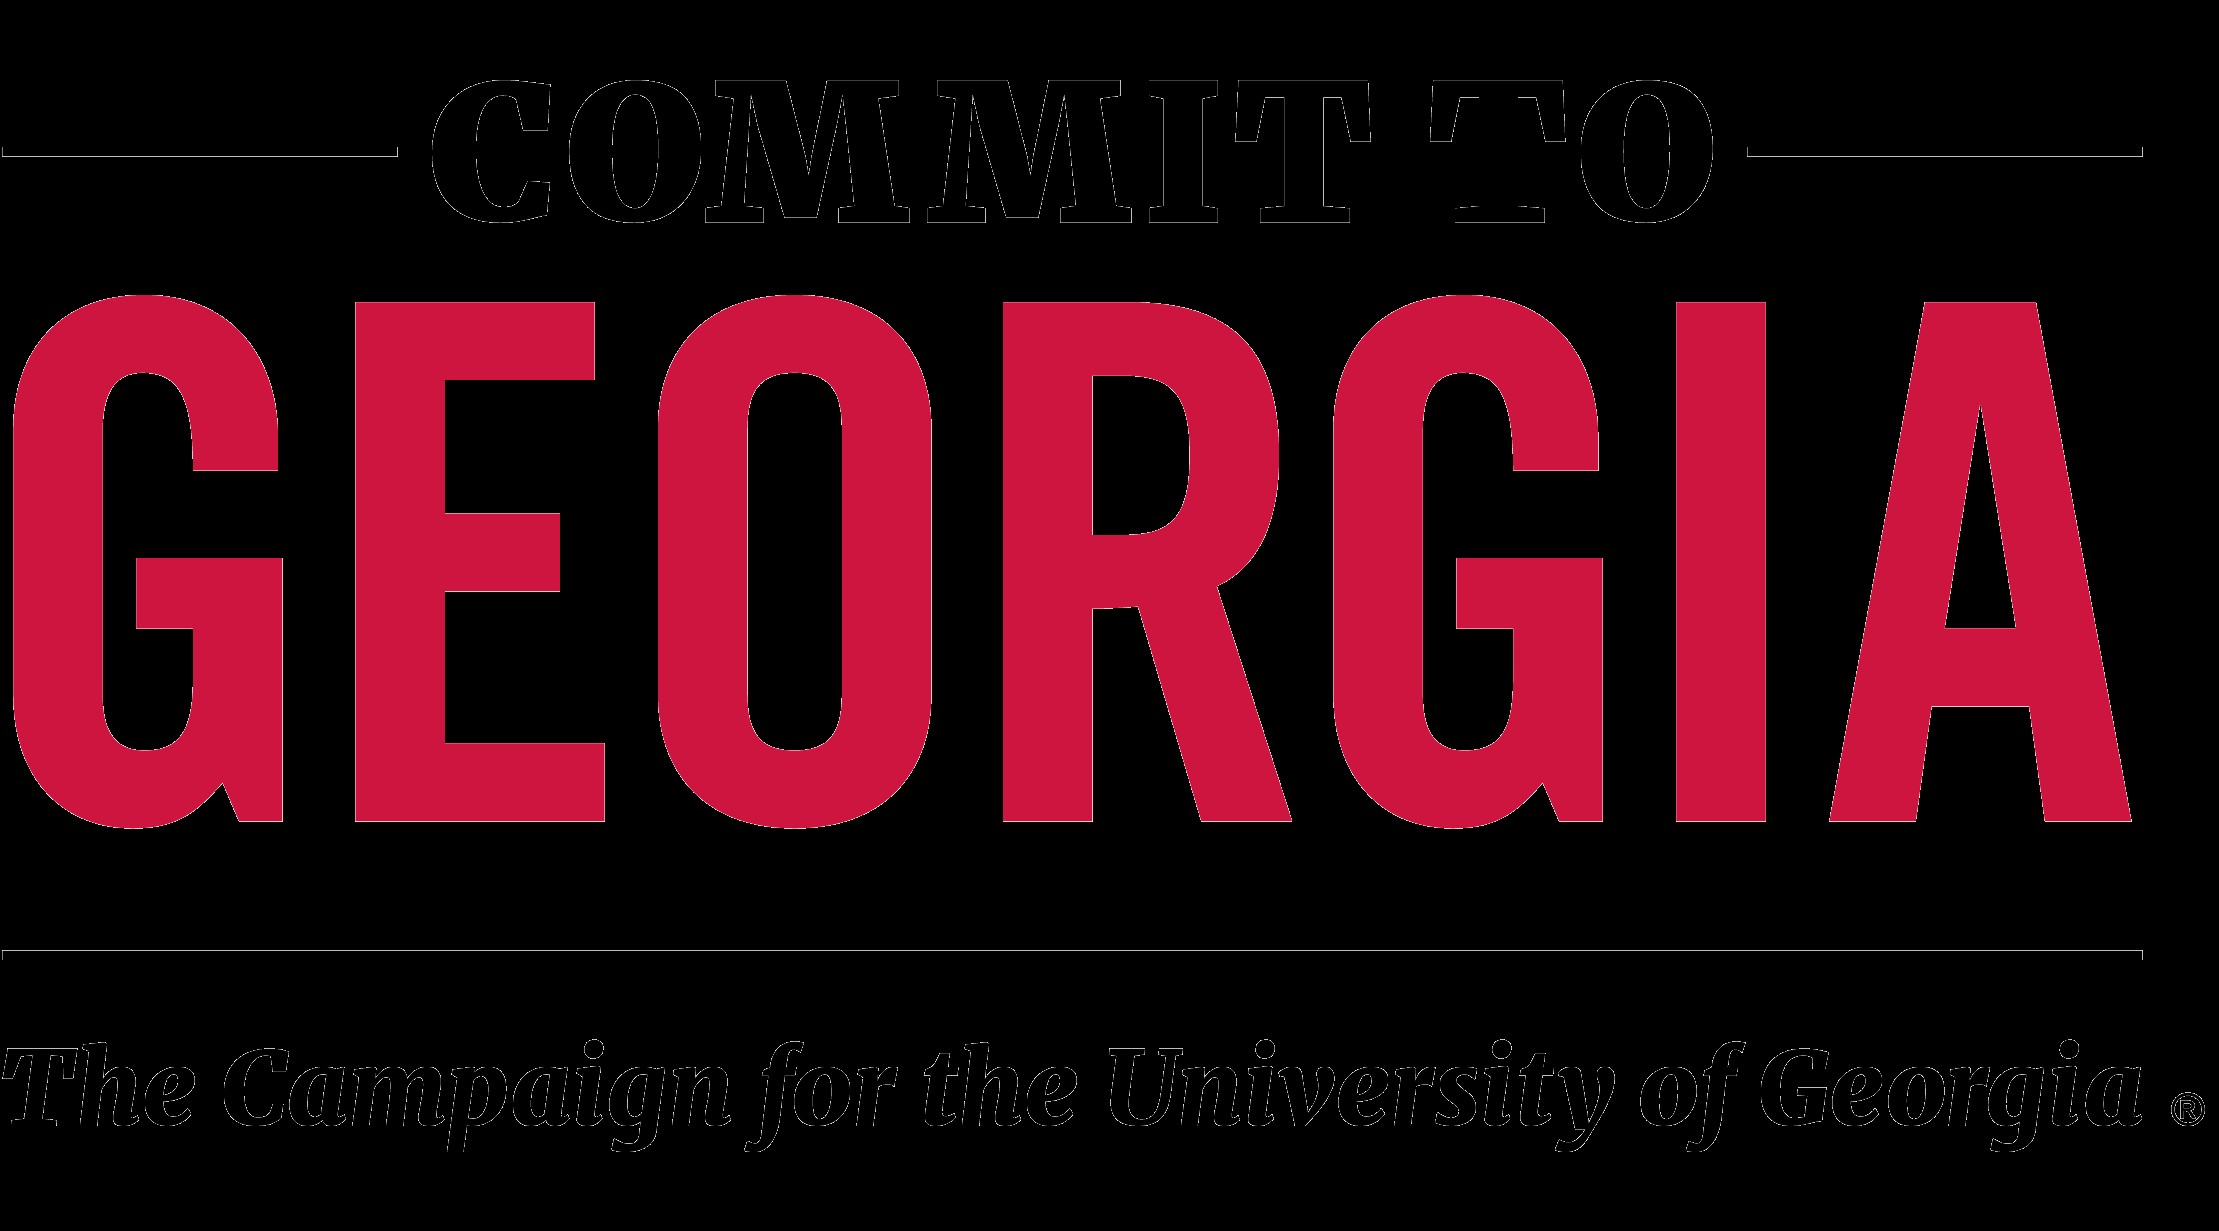 mit to Georgia — The Campaign for the University of Georgia